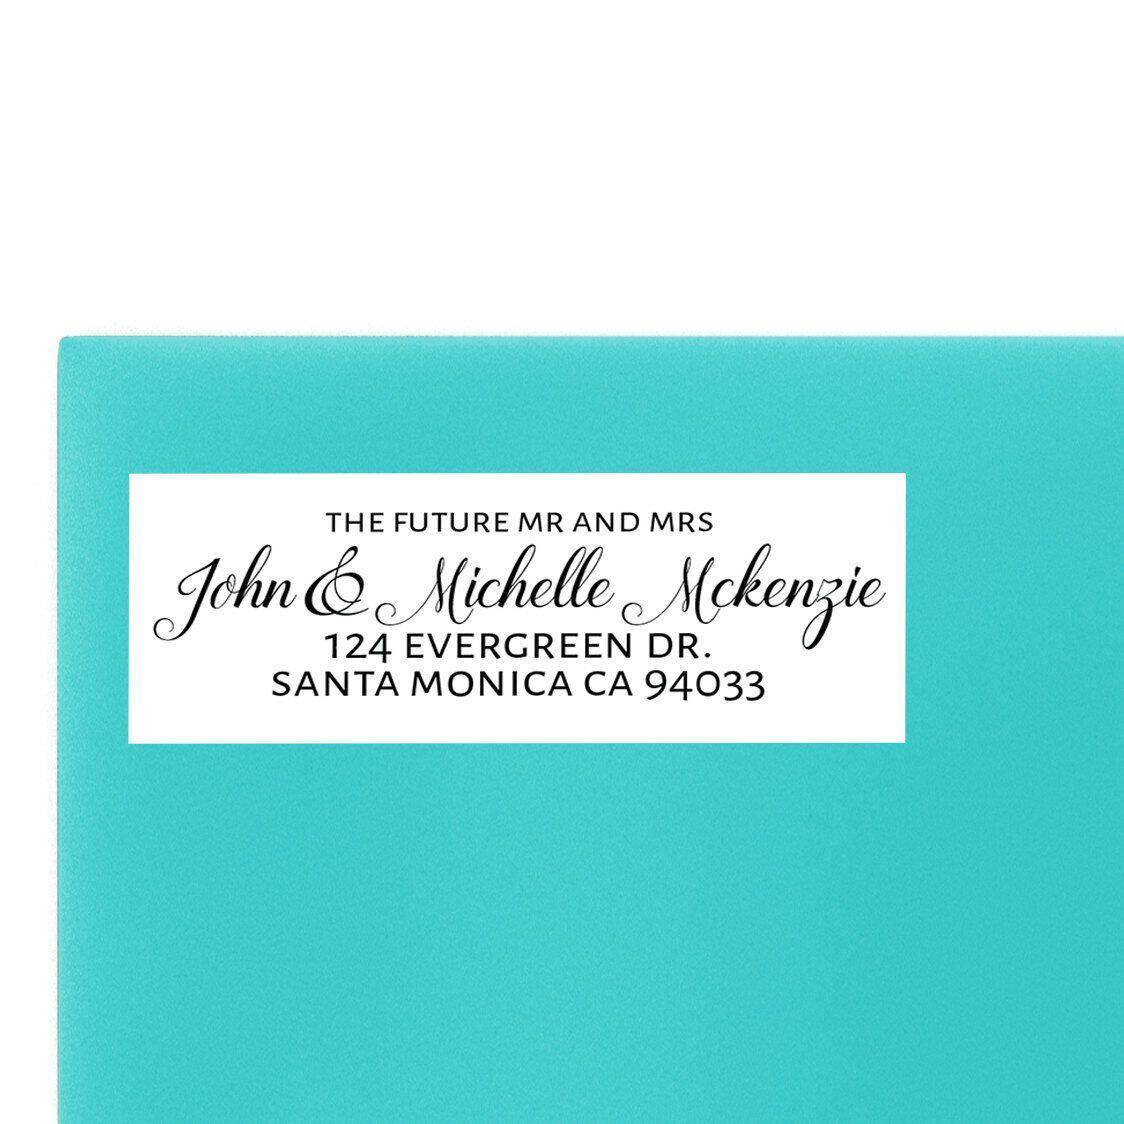 Wedding Return Address Labels, Sold in Set of 30, Personalized for Wedding Invitations